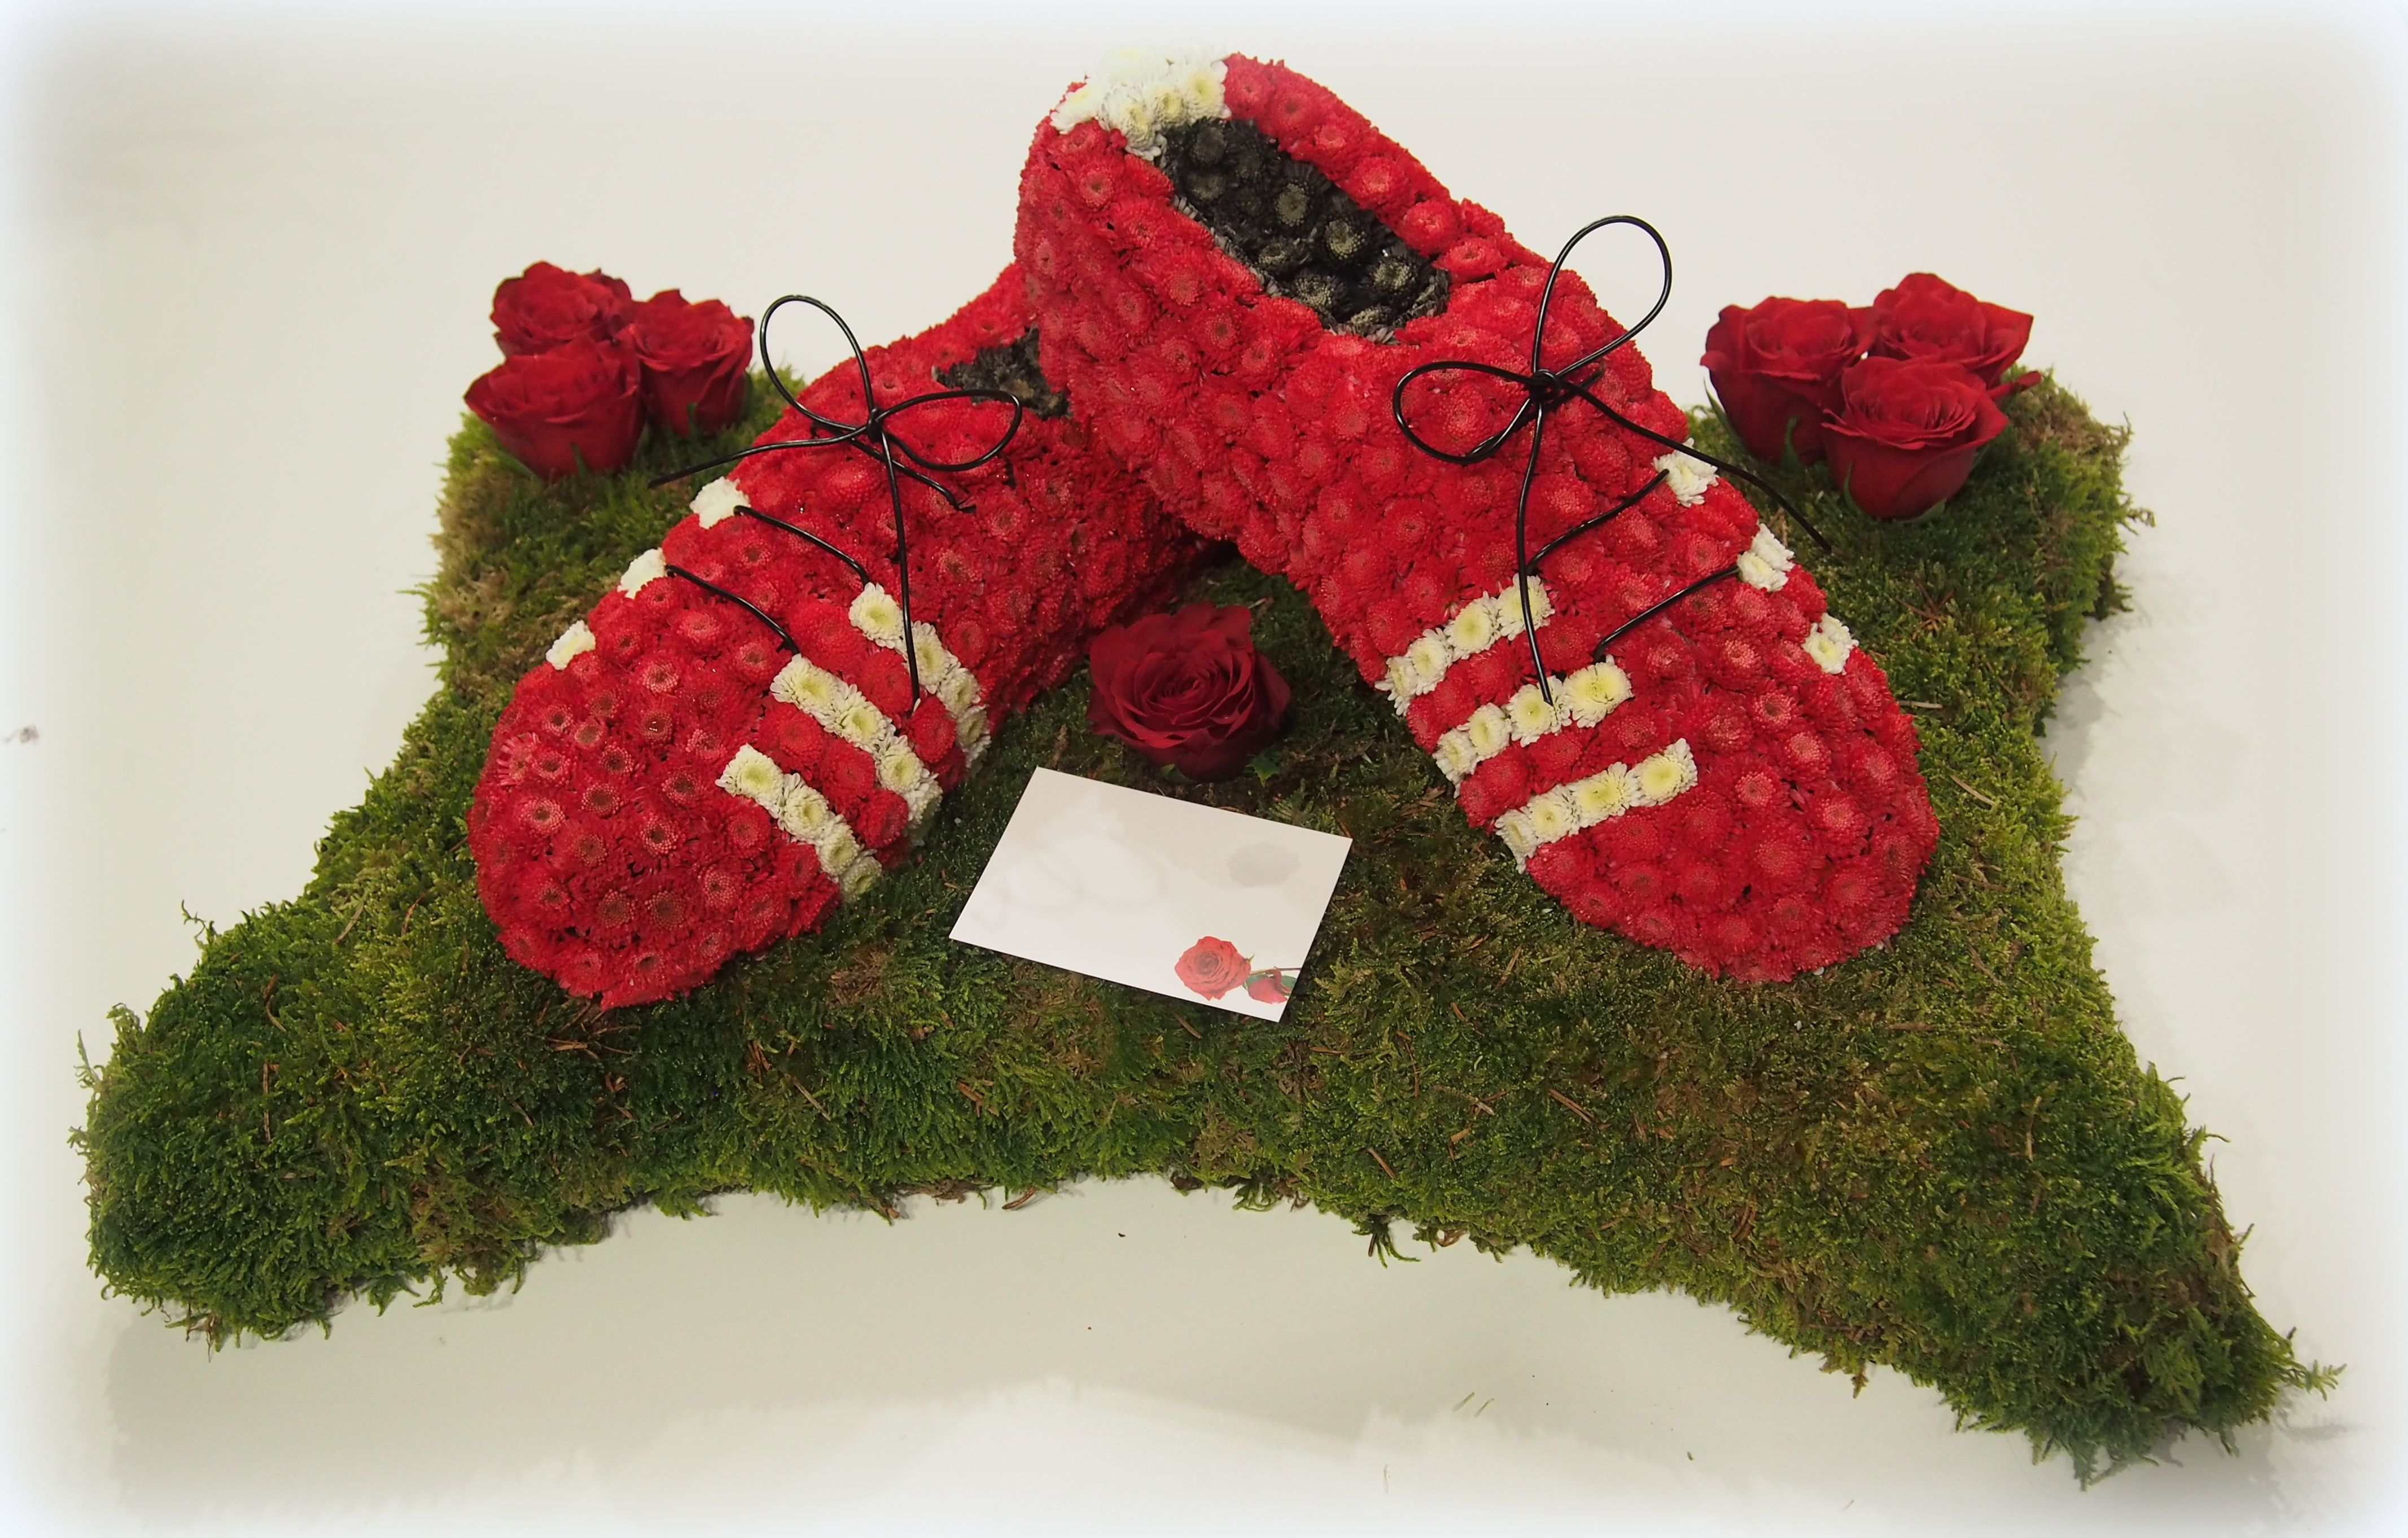 Football boots floral funeral tribute houghton regis florist shop football boots floral funeral tribute houghton regis florist izmirmasajfo